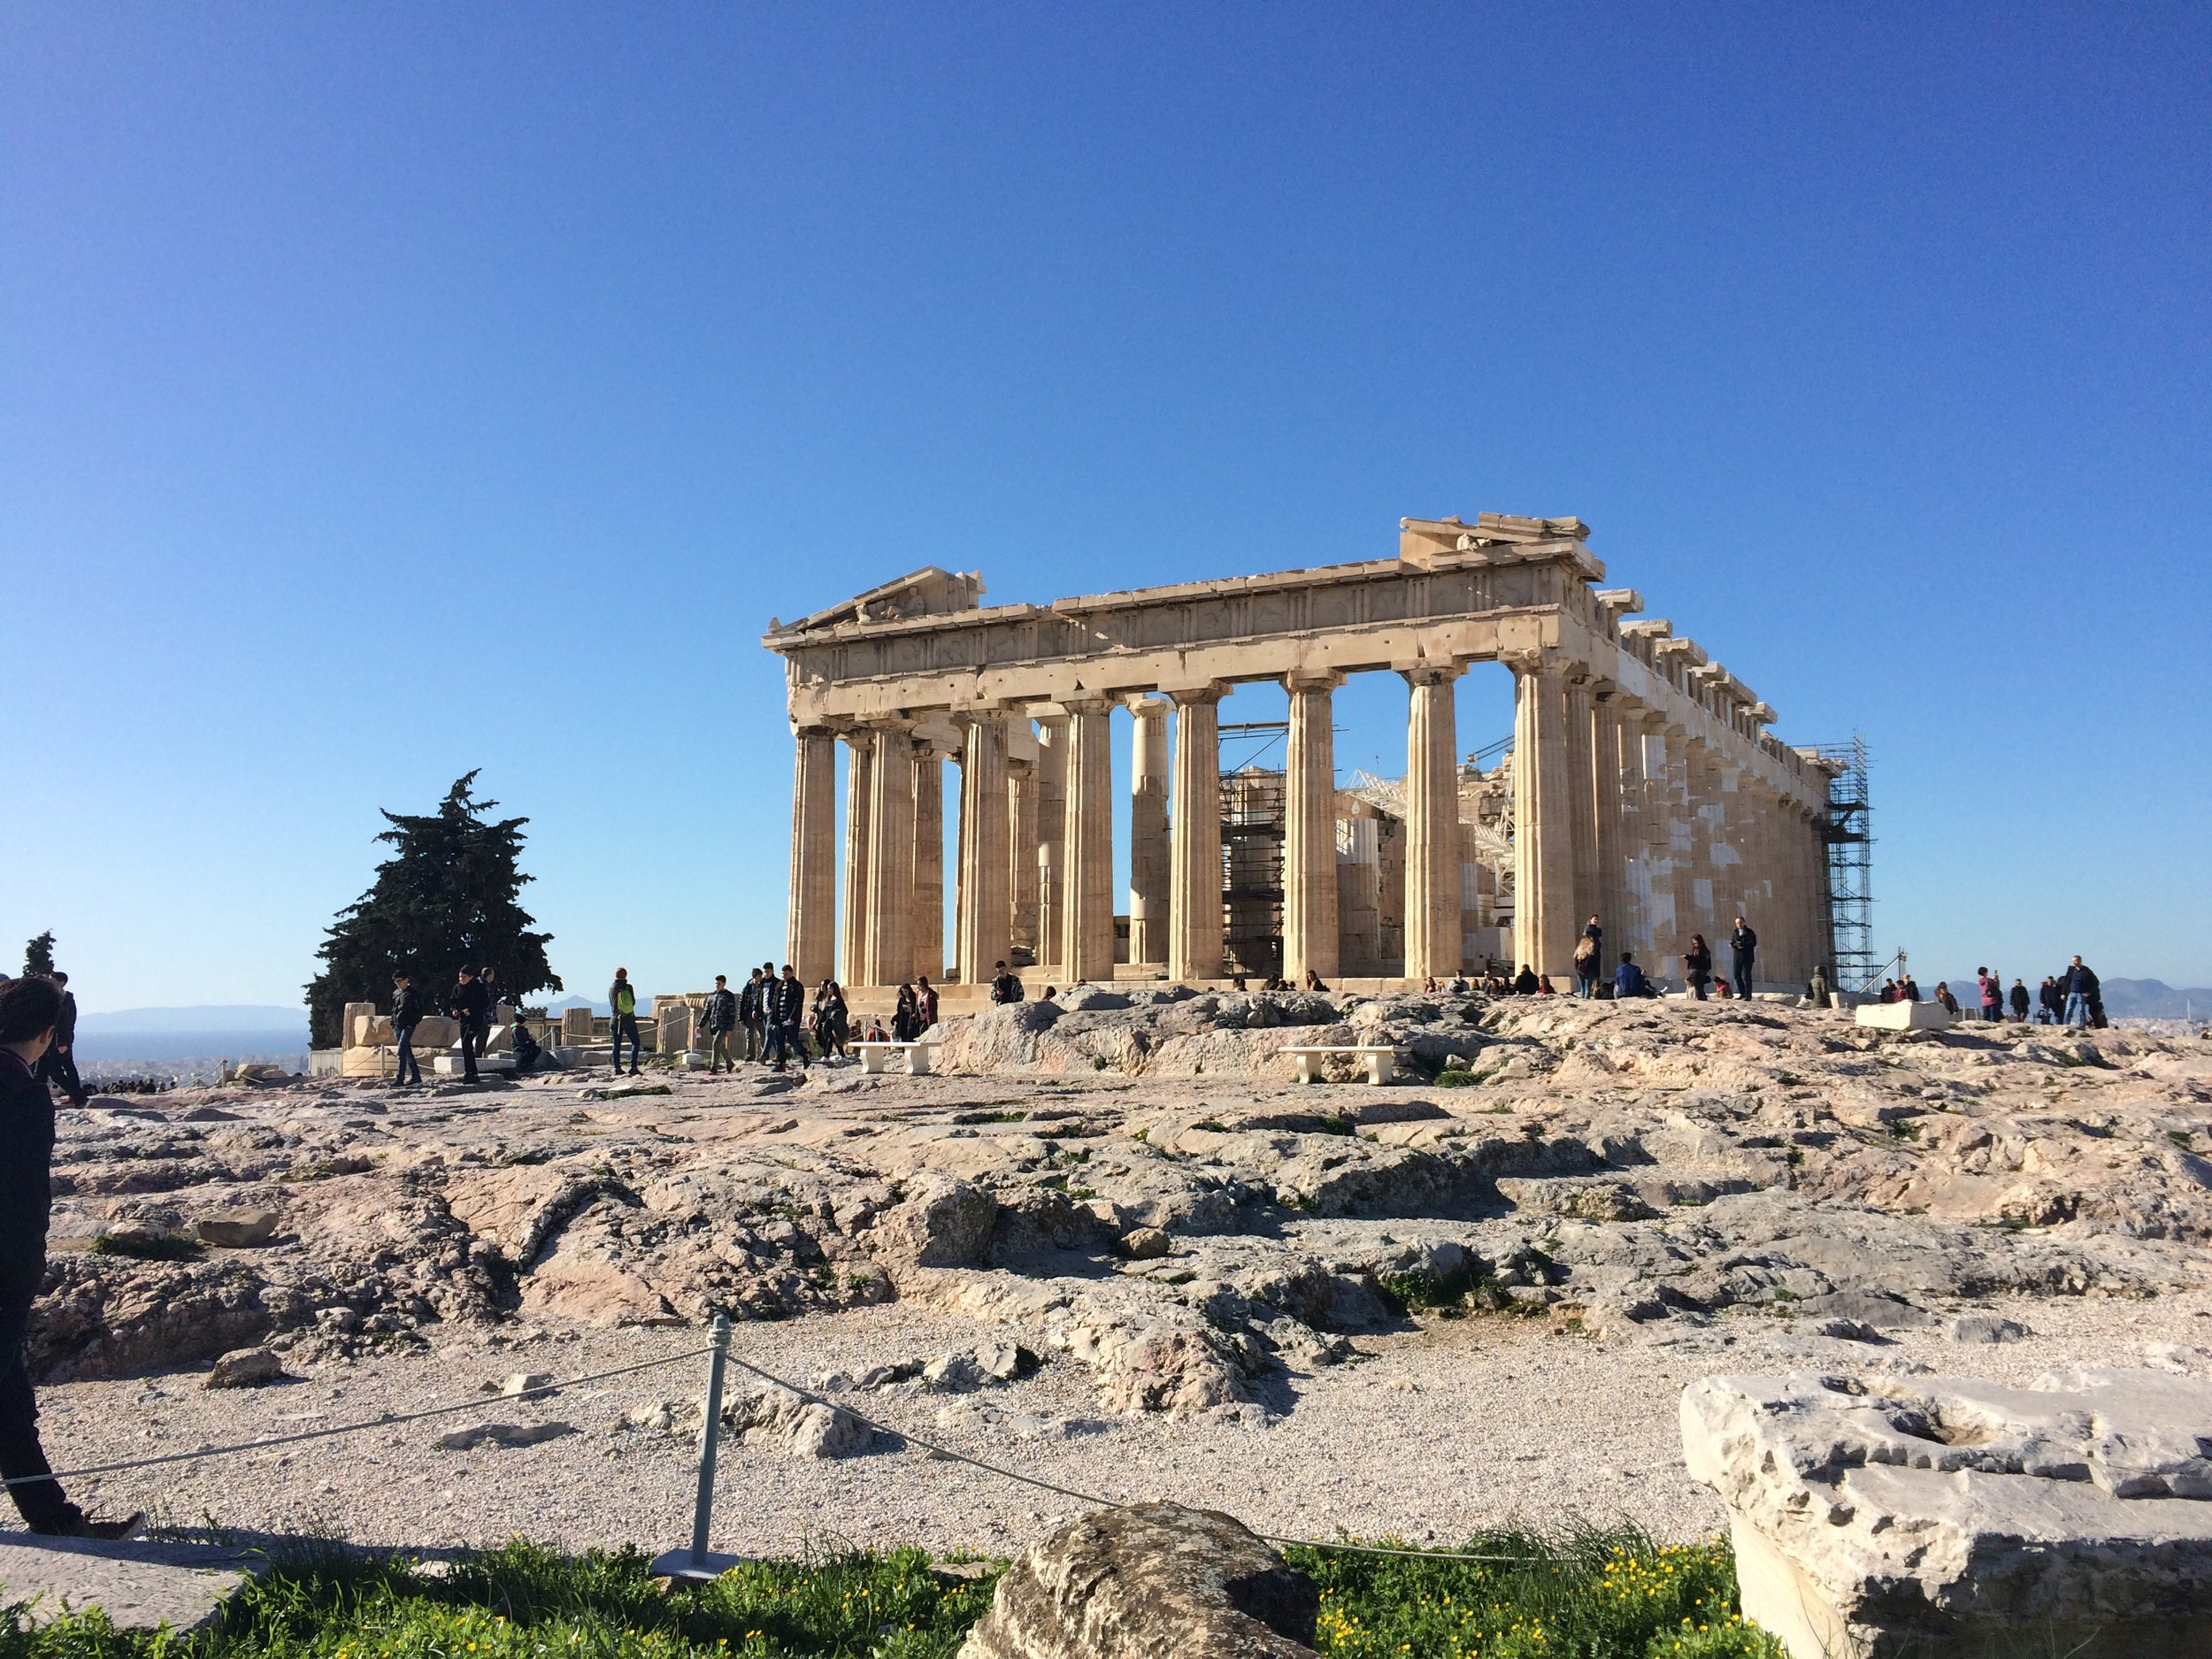 (The advantage of traveling Greece in the winter: there's hardly anyone else here!)